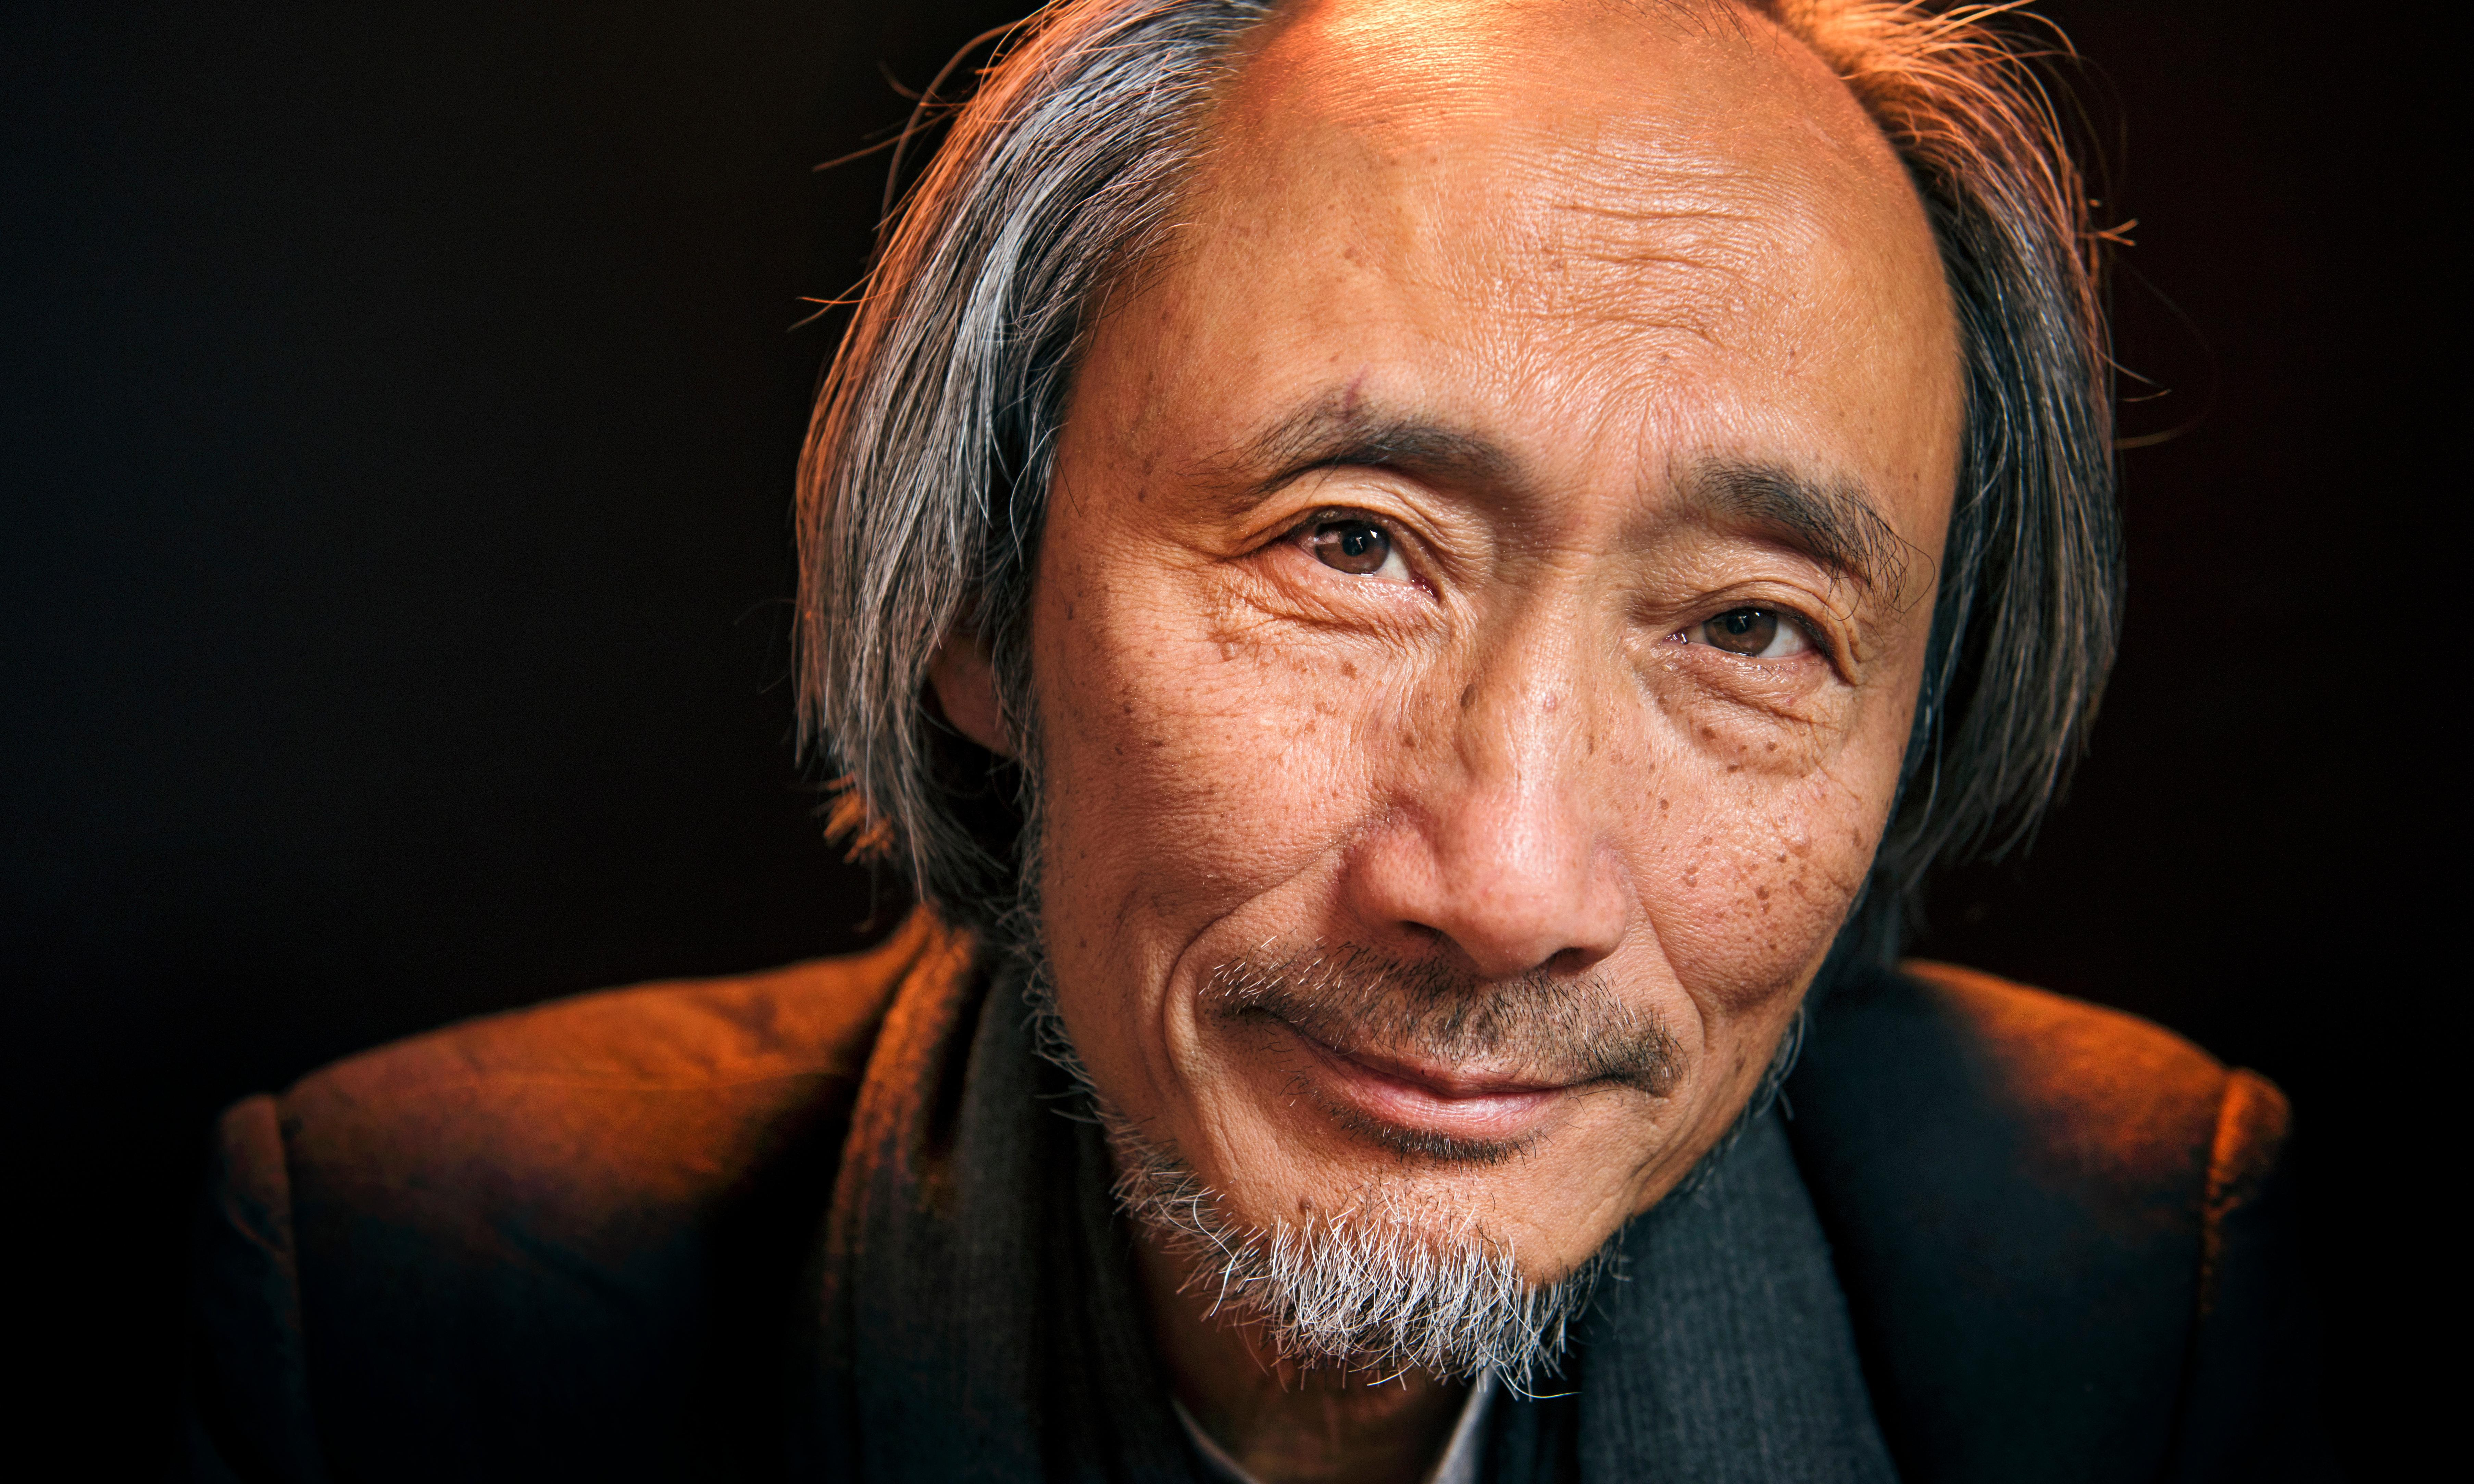 Ma Jian: 'Freedom can't be taken for granted. We have to remain constantly vigilant'